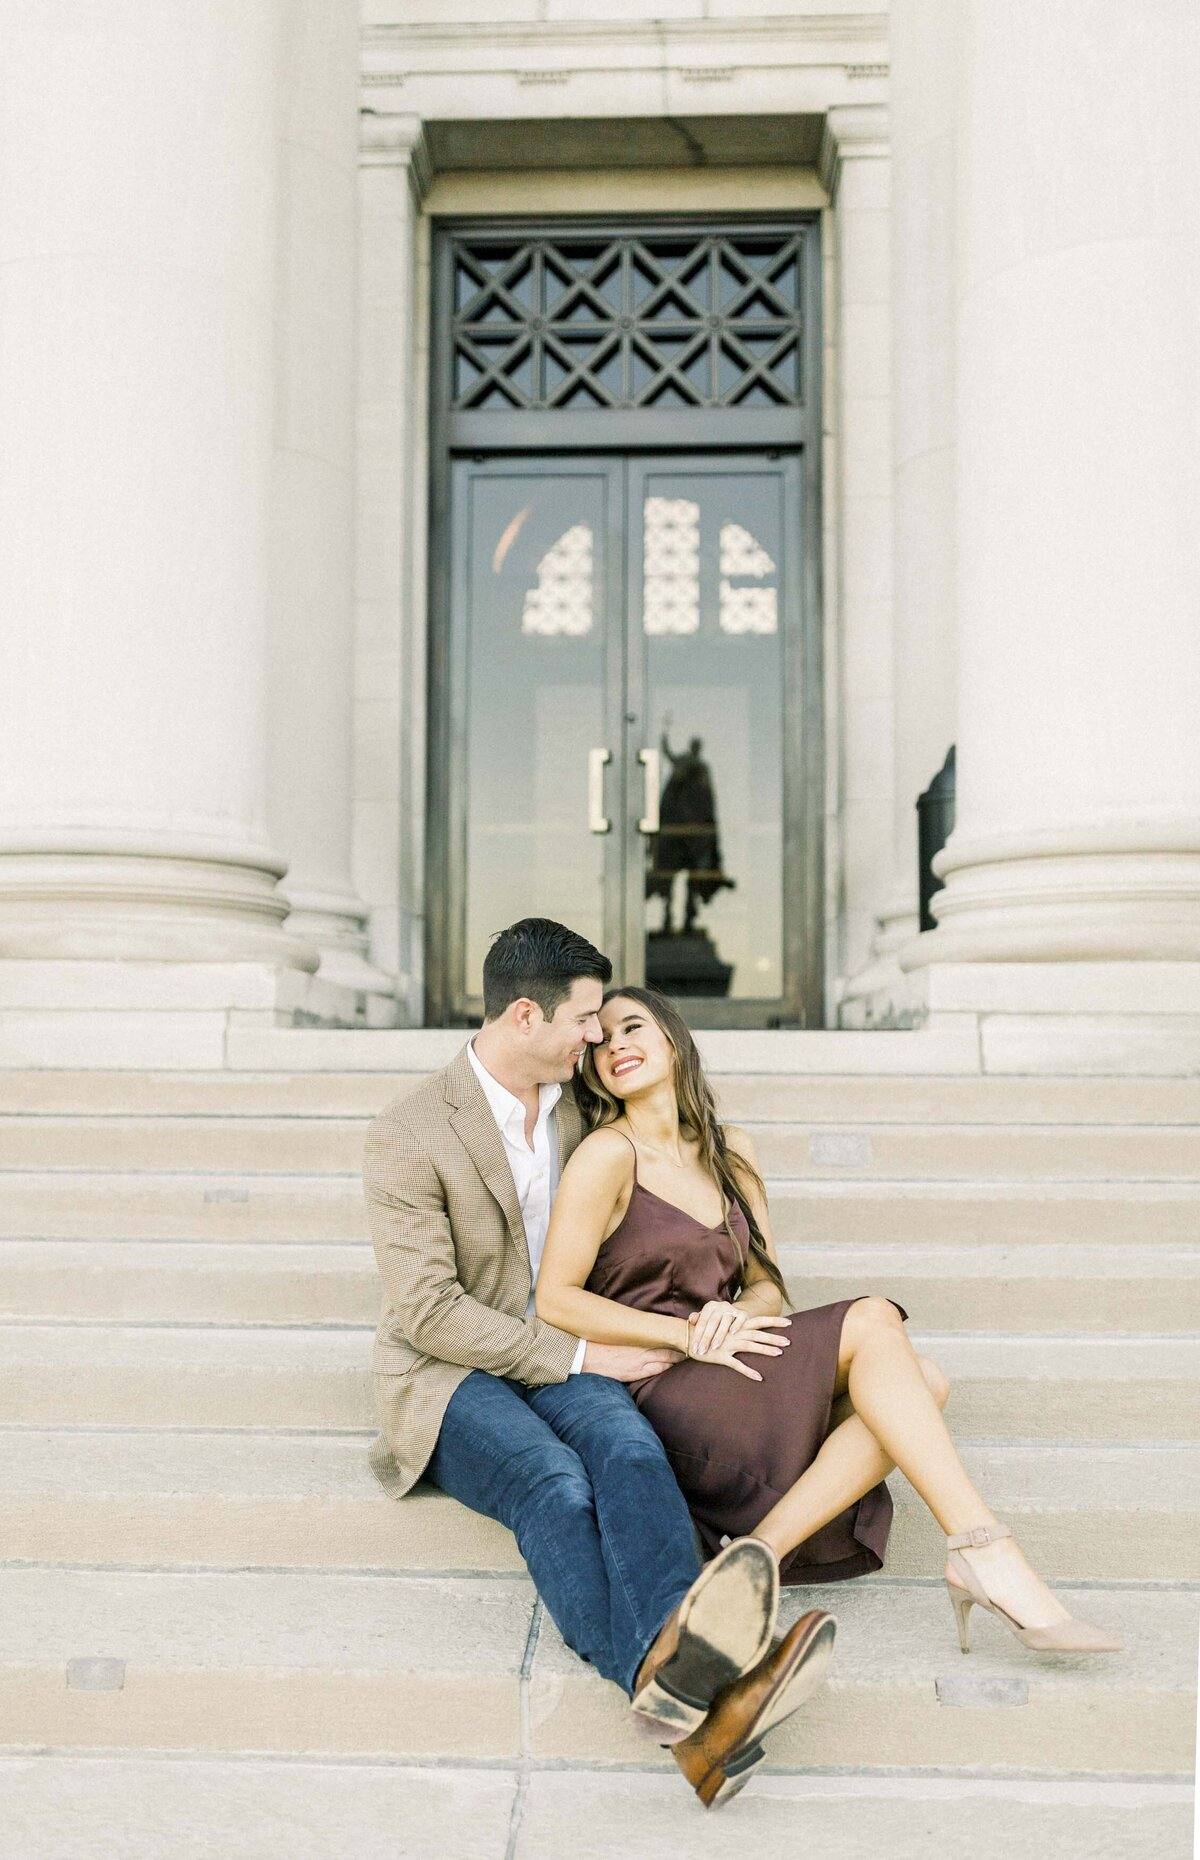 stlouis-engagement-photography-tracy-parrett7